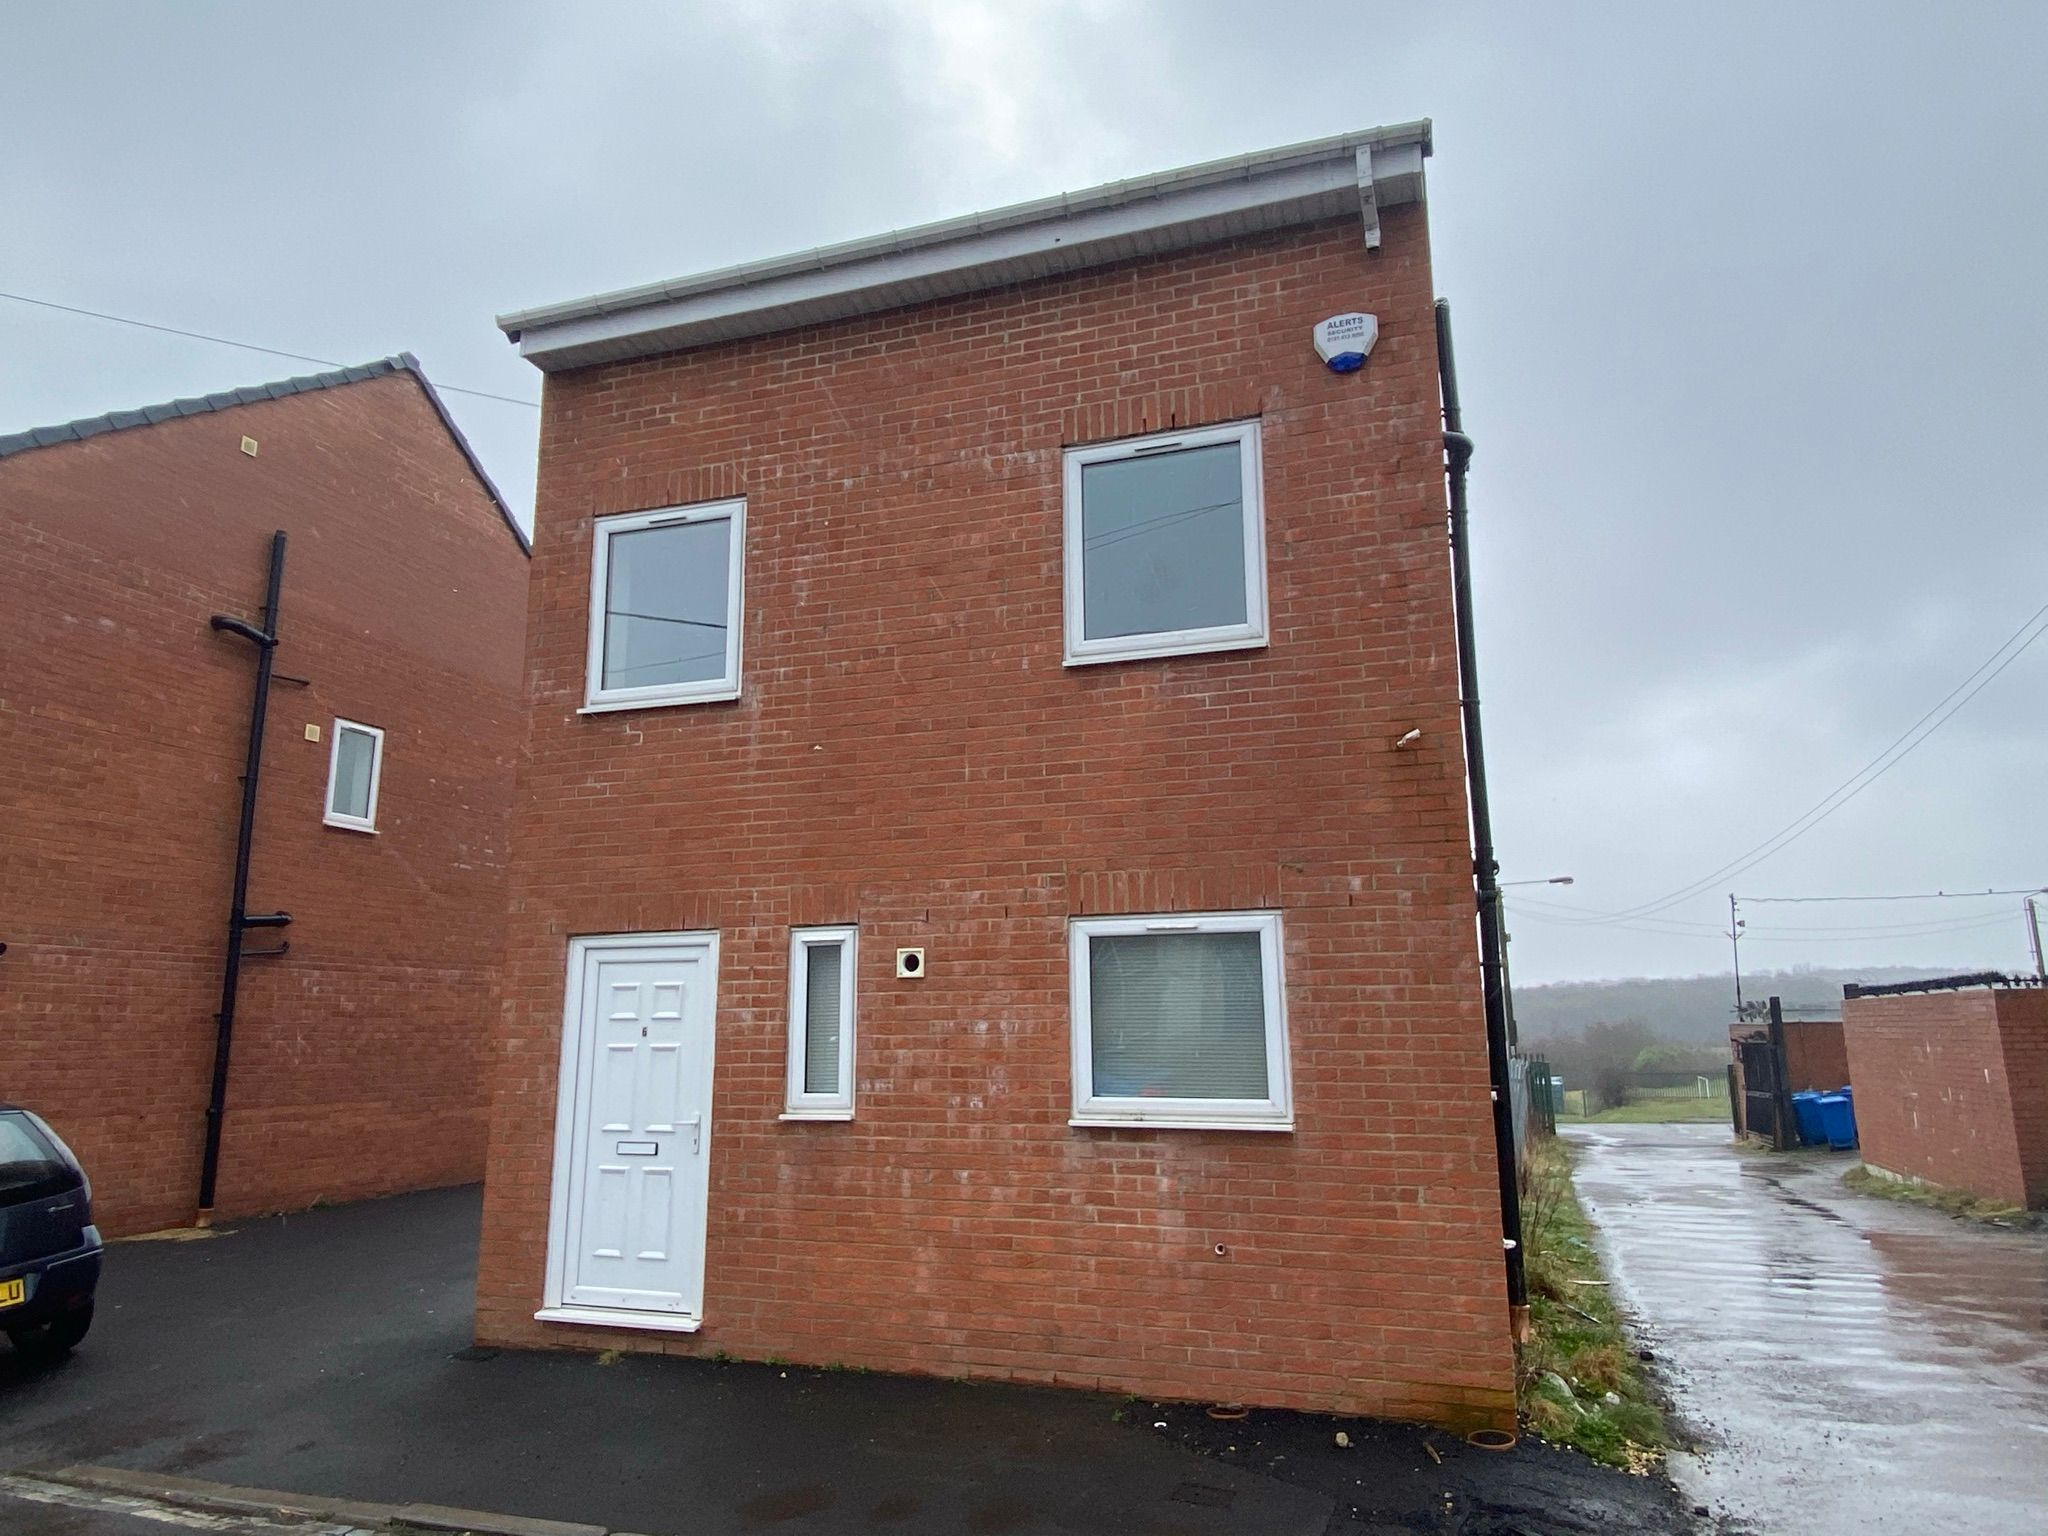 4 bedroom detached house For Sale in Durham - Photograph 20.